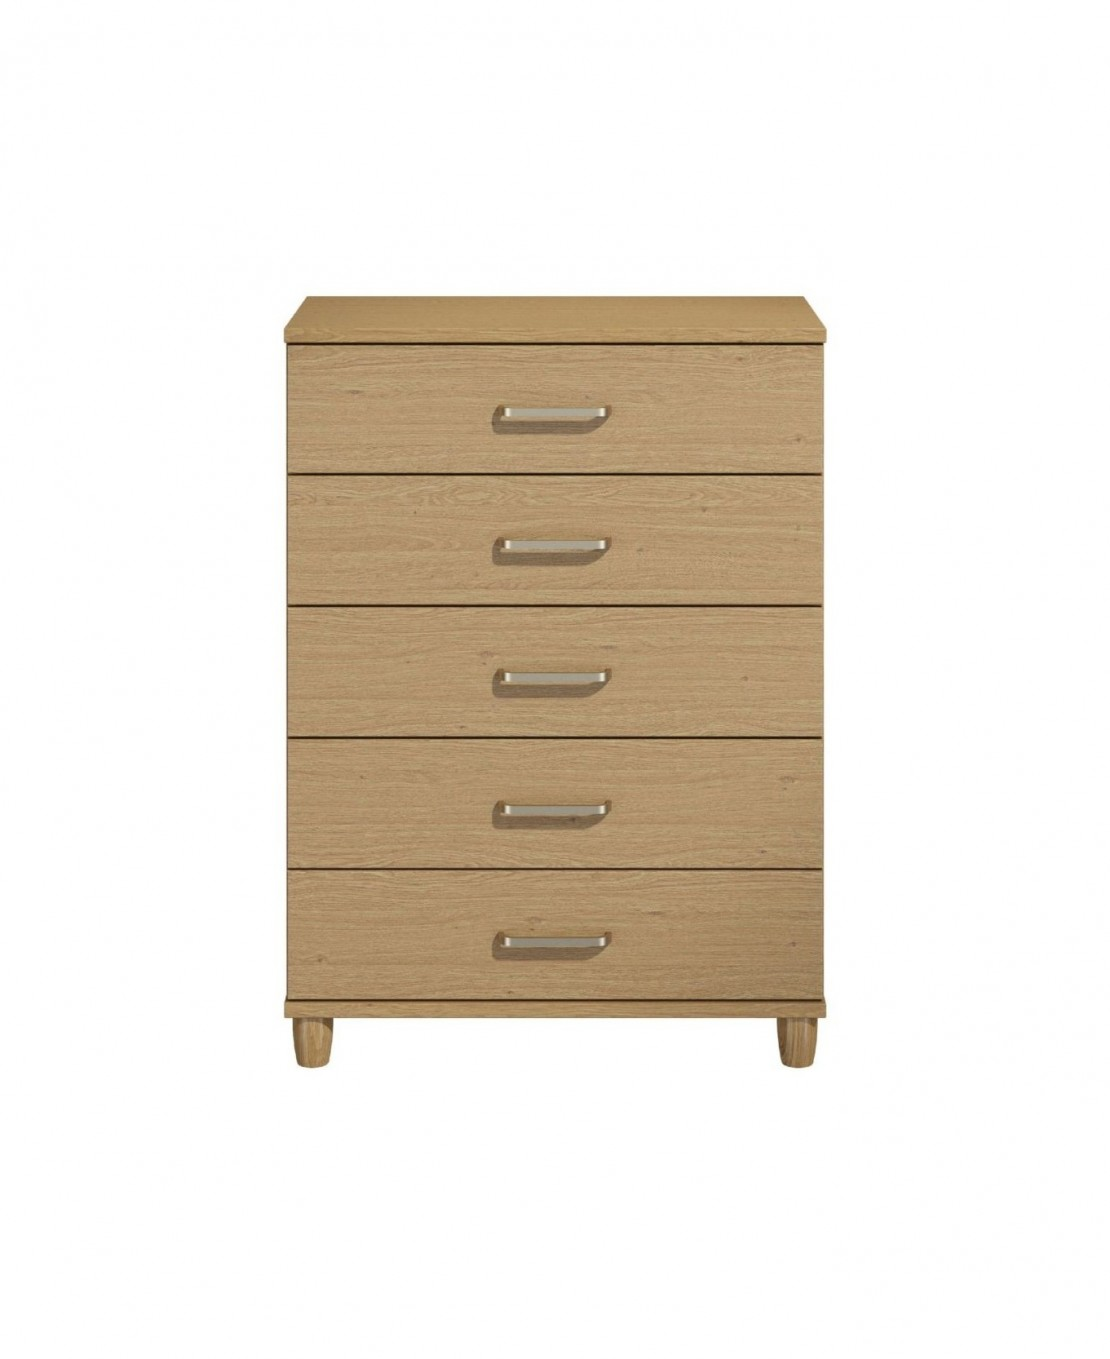 /_images/product-photos/kt-furniture-deco-5-drawer-large-chest-oak-woodgrain-with-oak-a.jpg